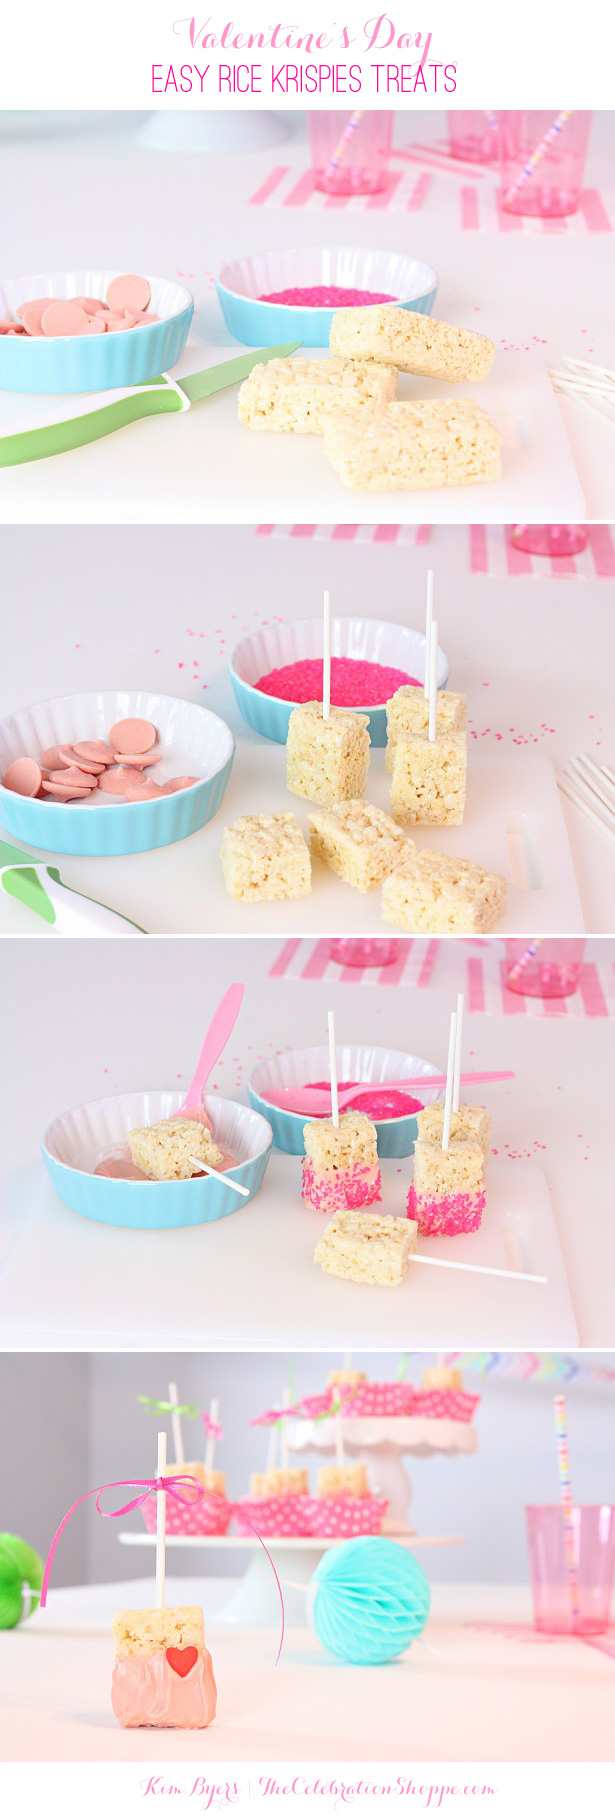 Make easy Rice Krispies Treats for Valentine's Day